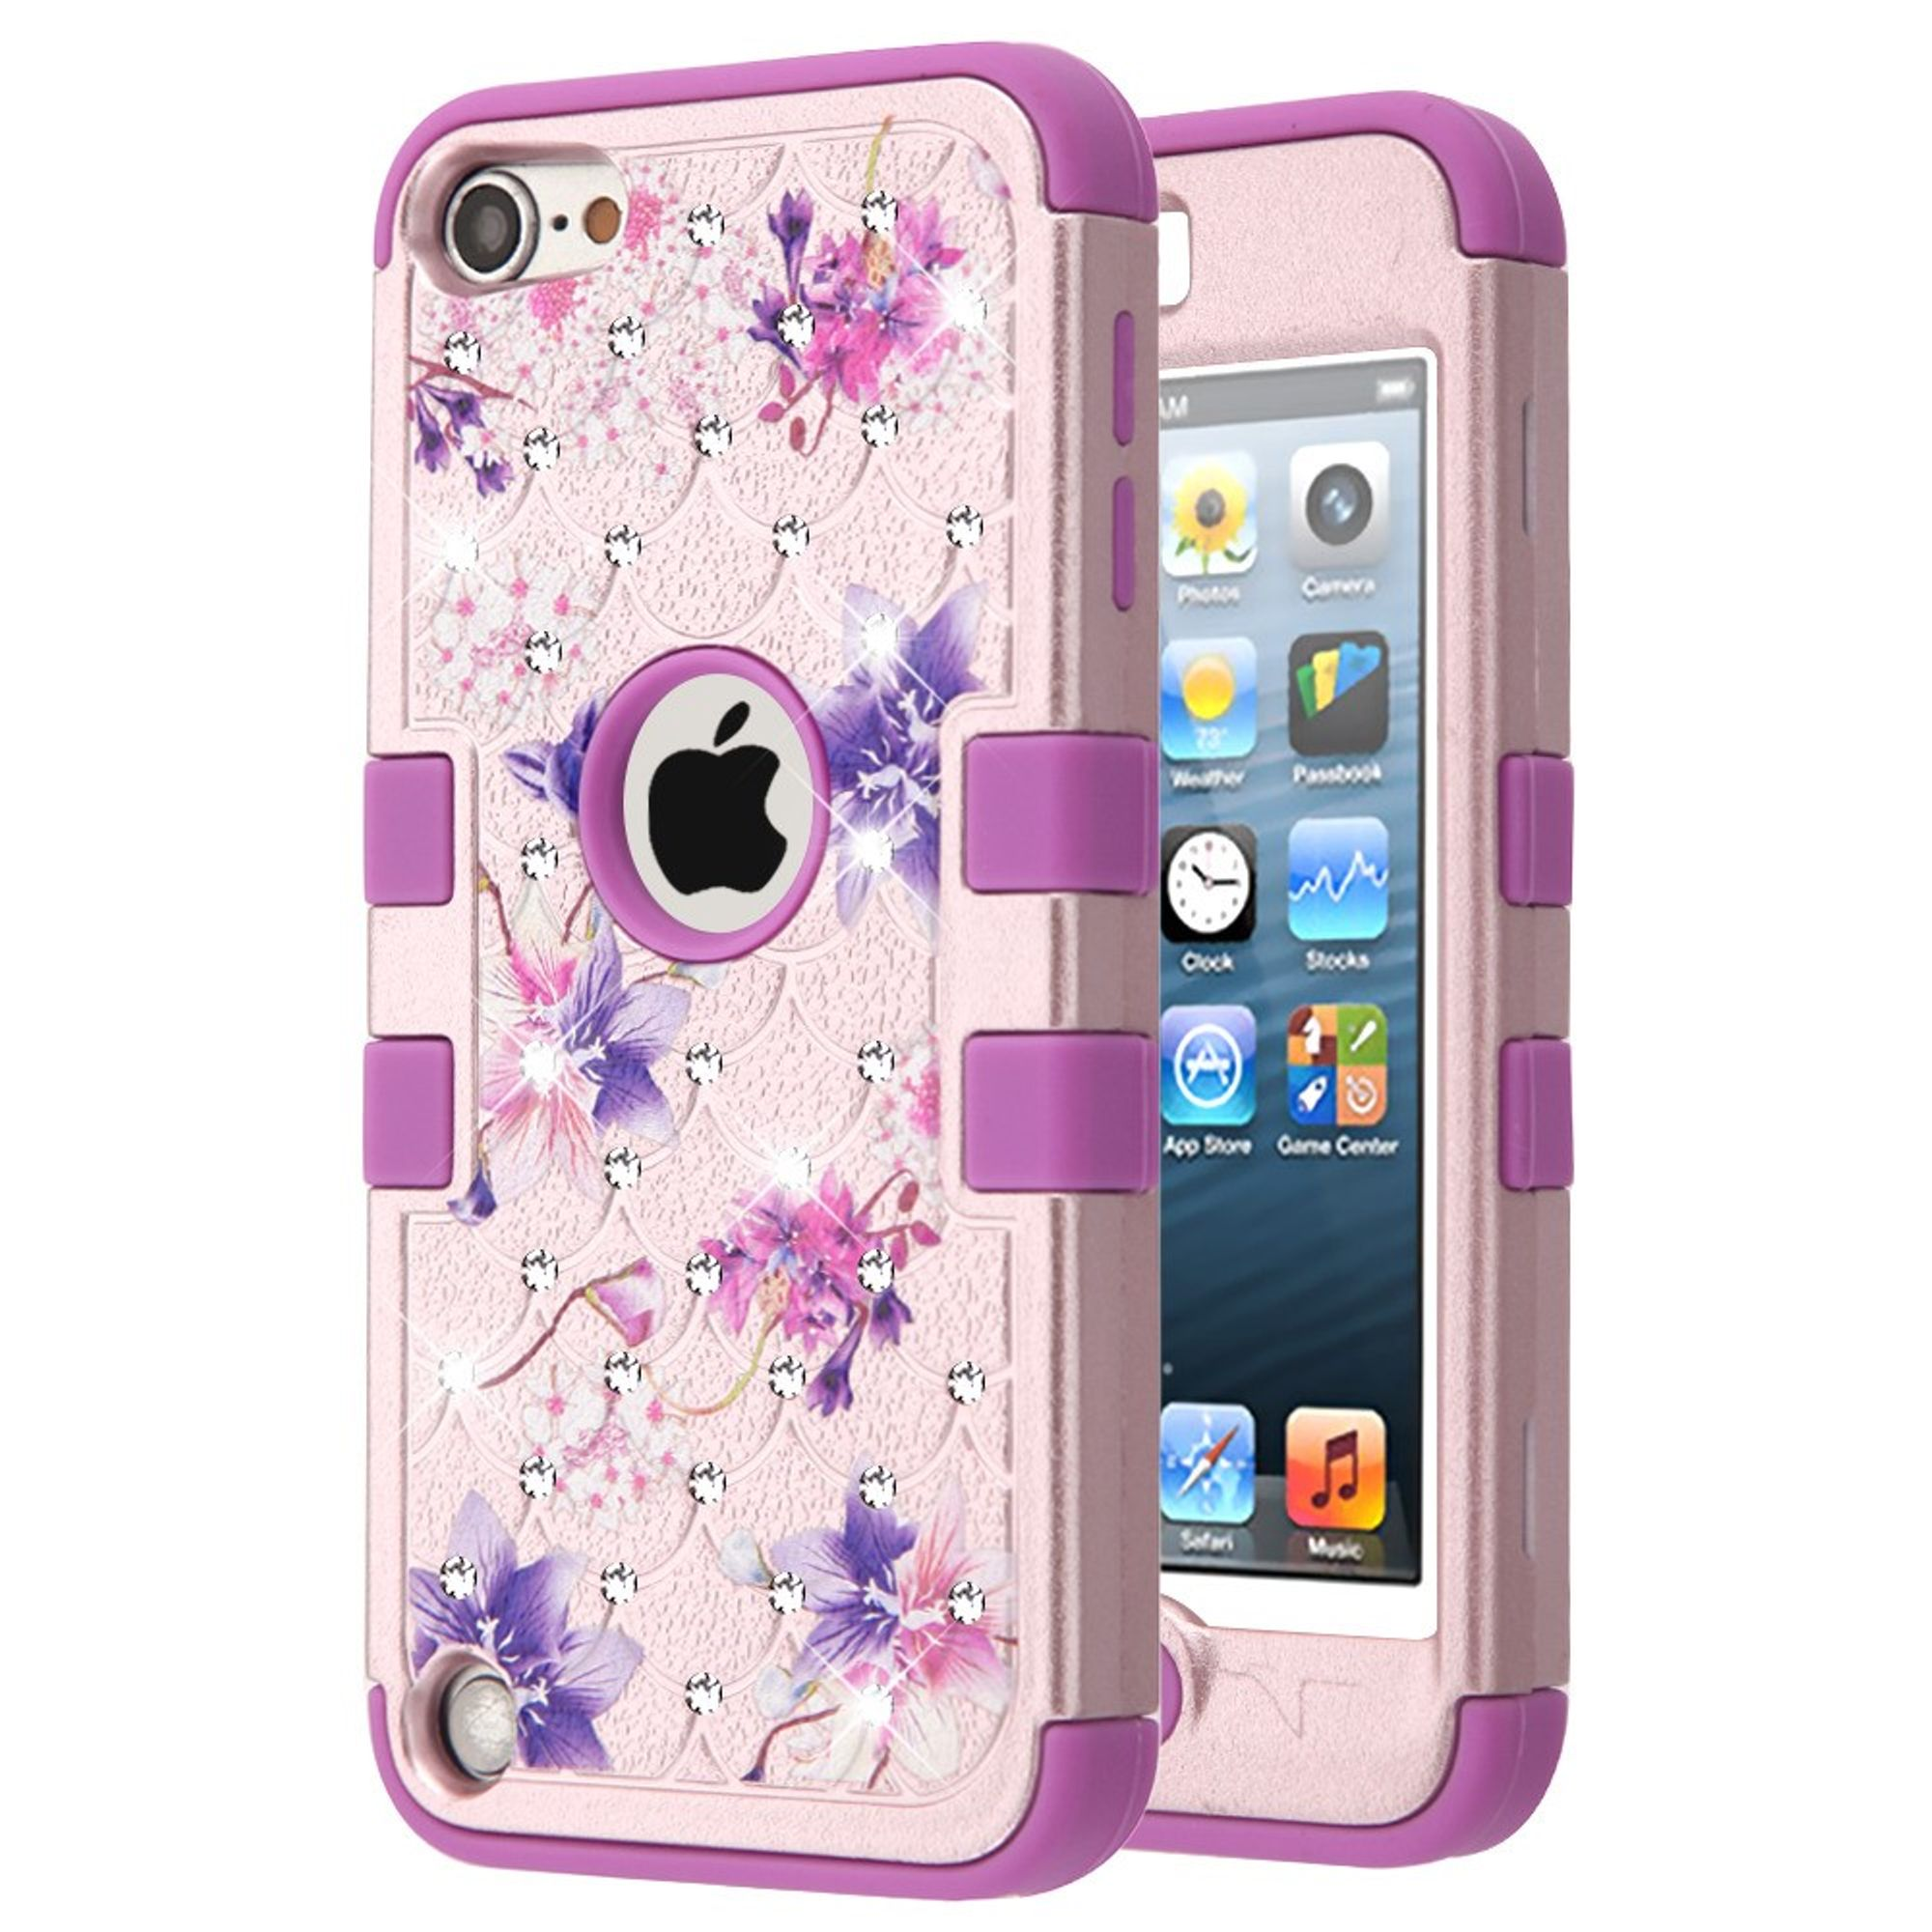 iPod Touch 6th generation case by Insten Full Star Flowers Dual Layer Hybrid PC/TPU Rubber Case Cover With Diamond For Apple iPod Touch 5th Gen/6th Gen